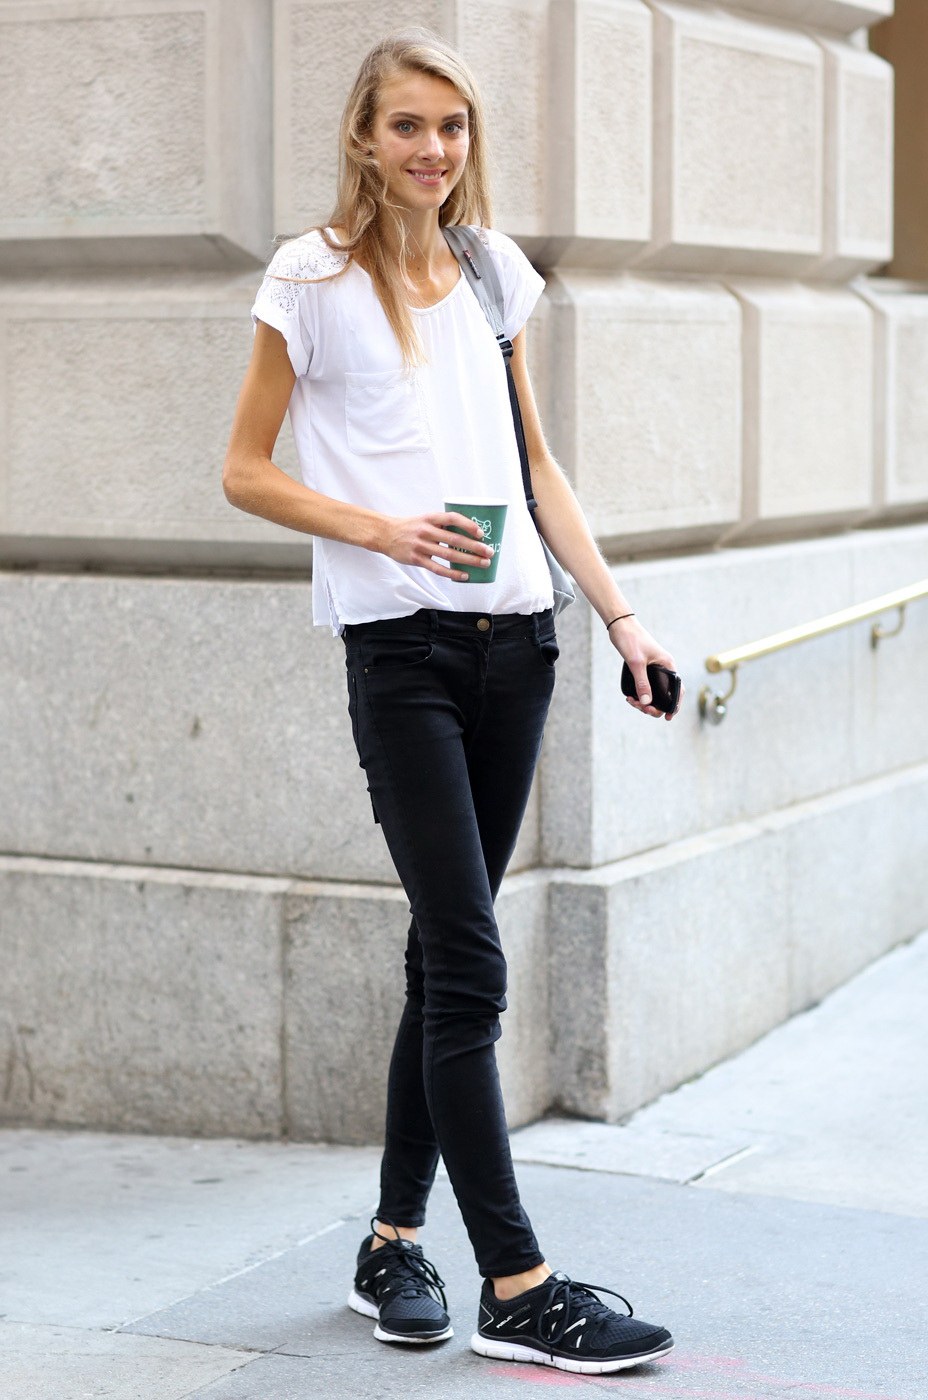 New Trendy Black Jeans Outfits Ideas For Women 27